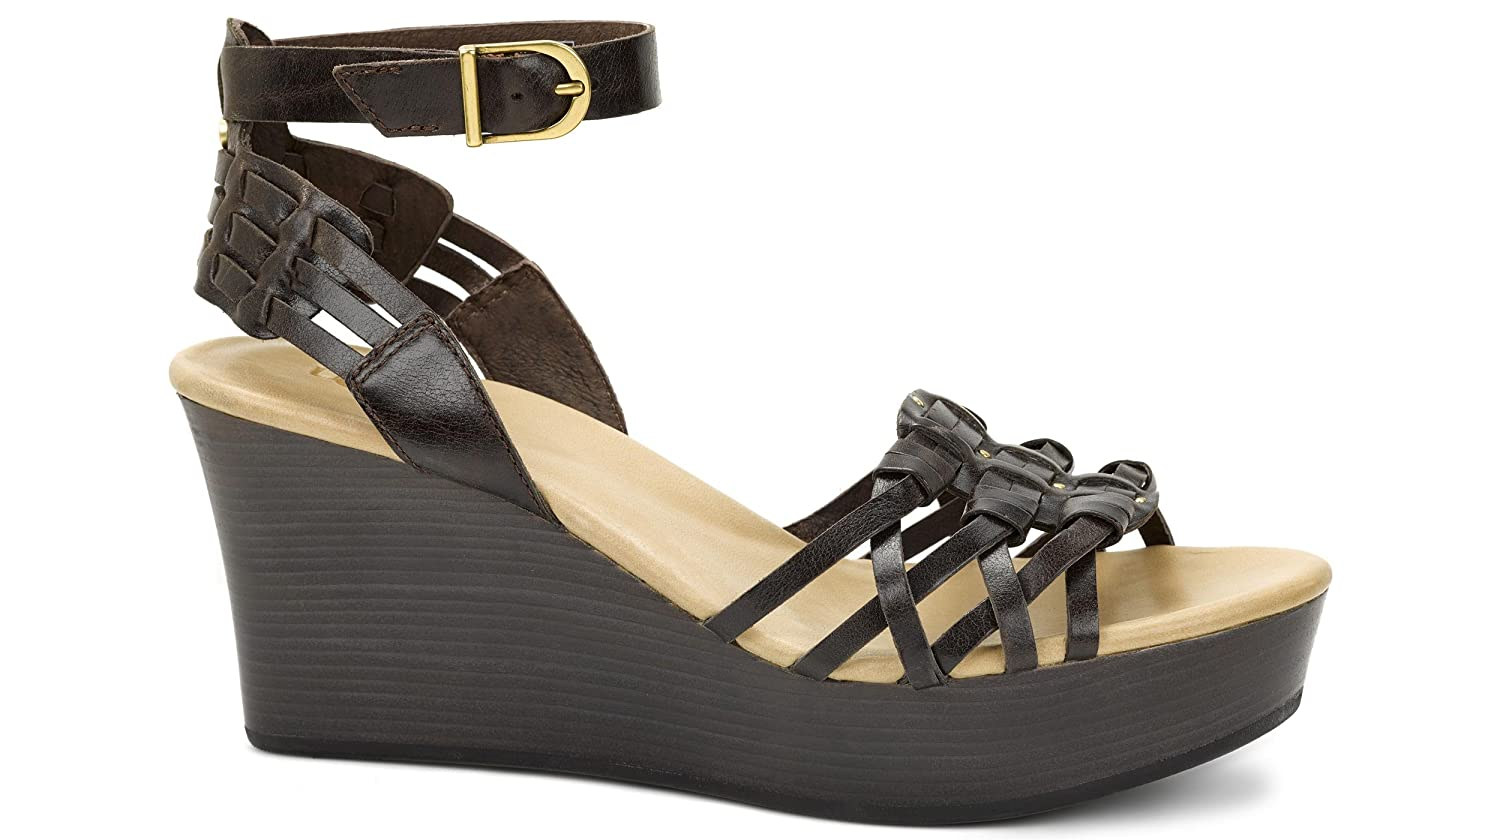 UGG Women's Farrah Ankle Strap Wedge Sandal